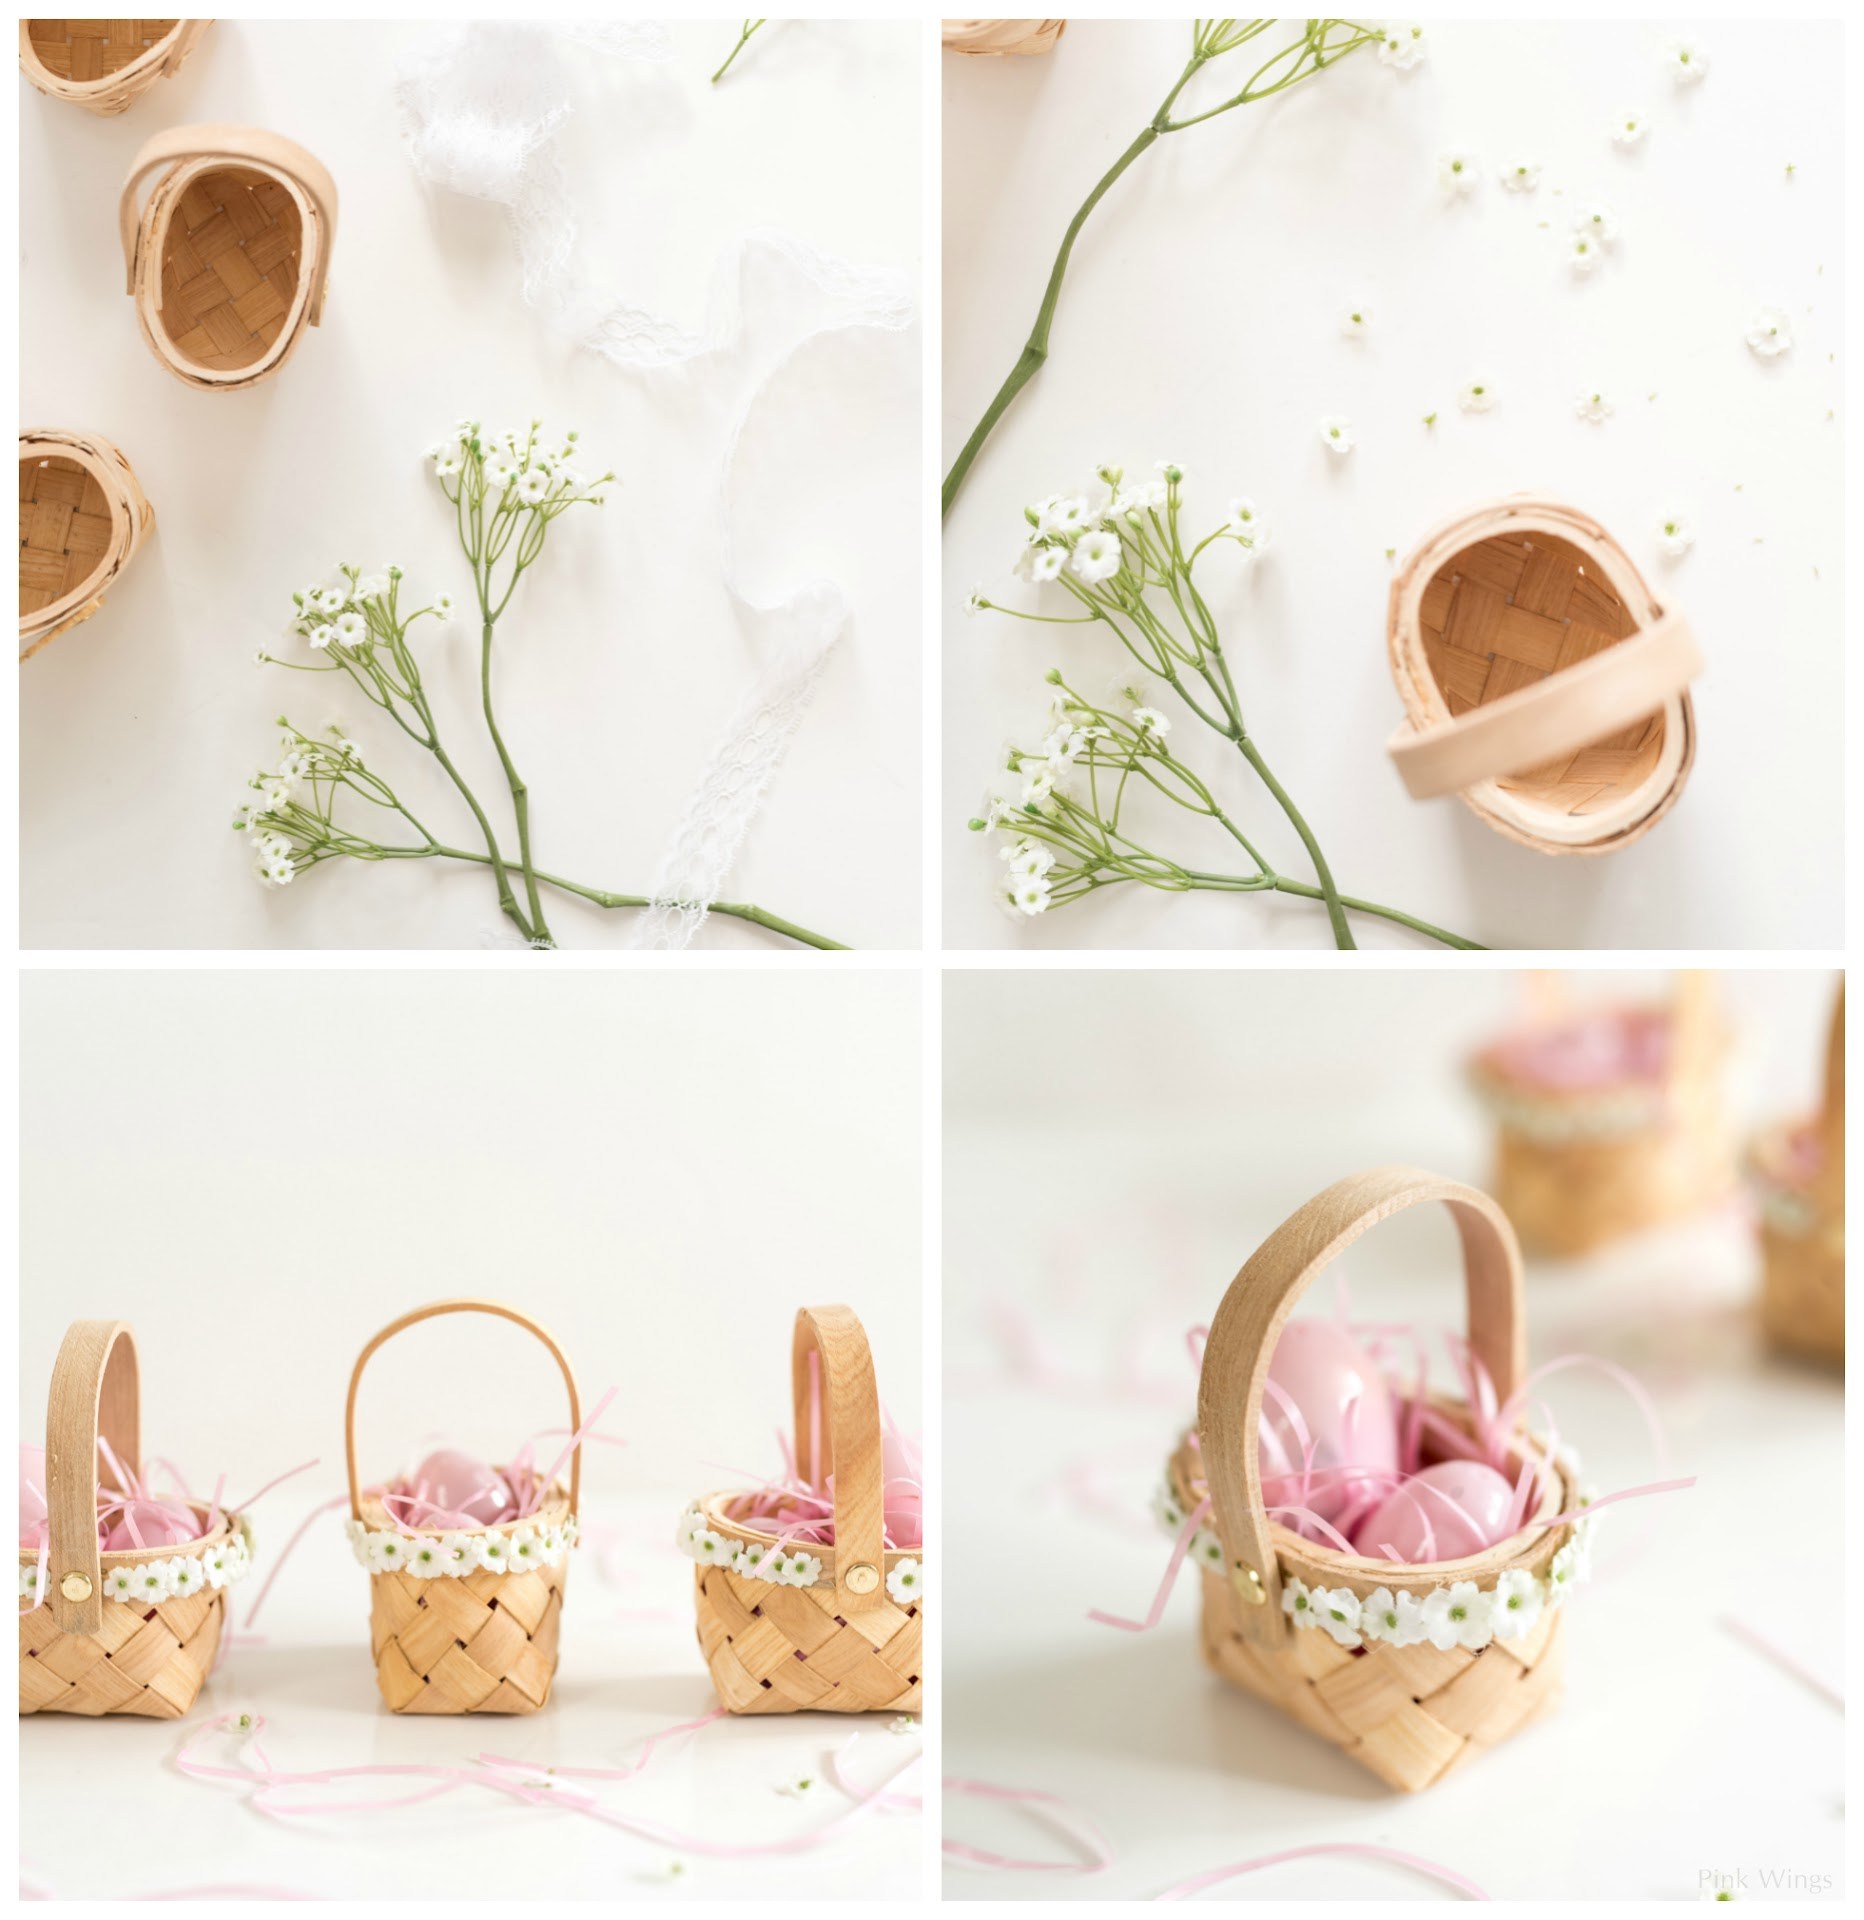 easter gift ideas for adults, teenagers, kinds, men, friends, family, little easter baskets